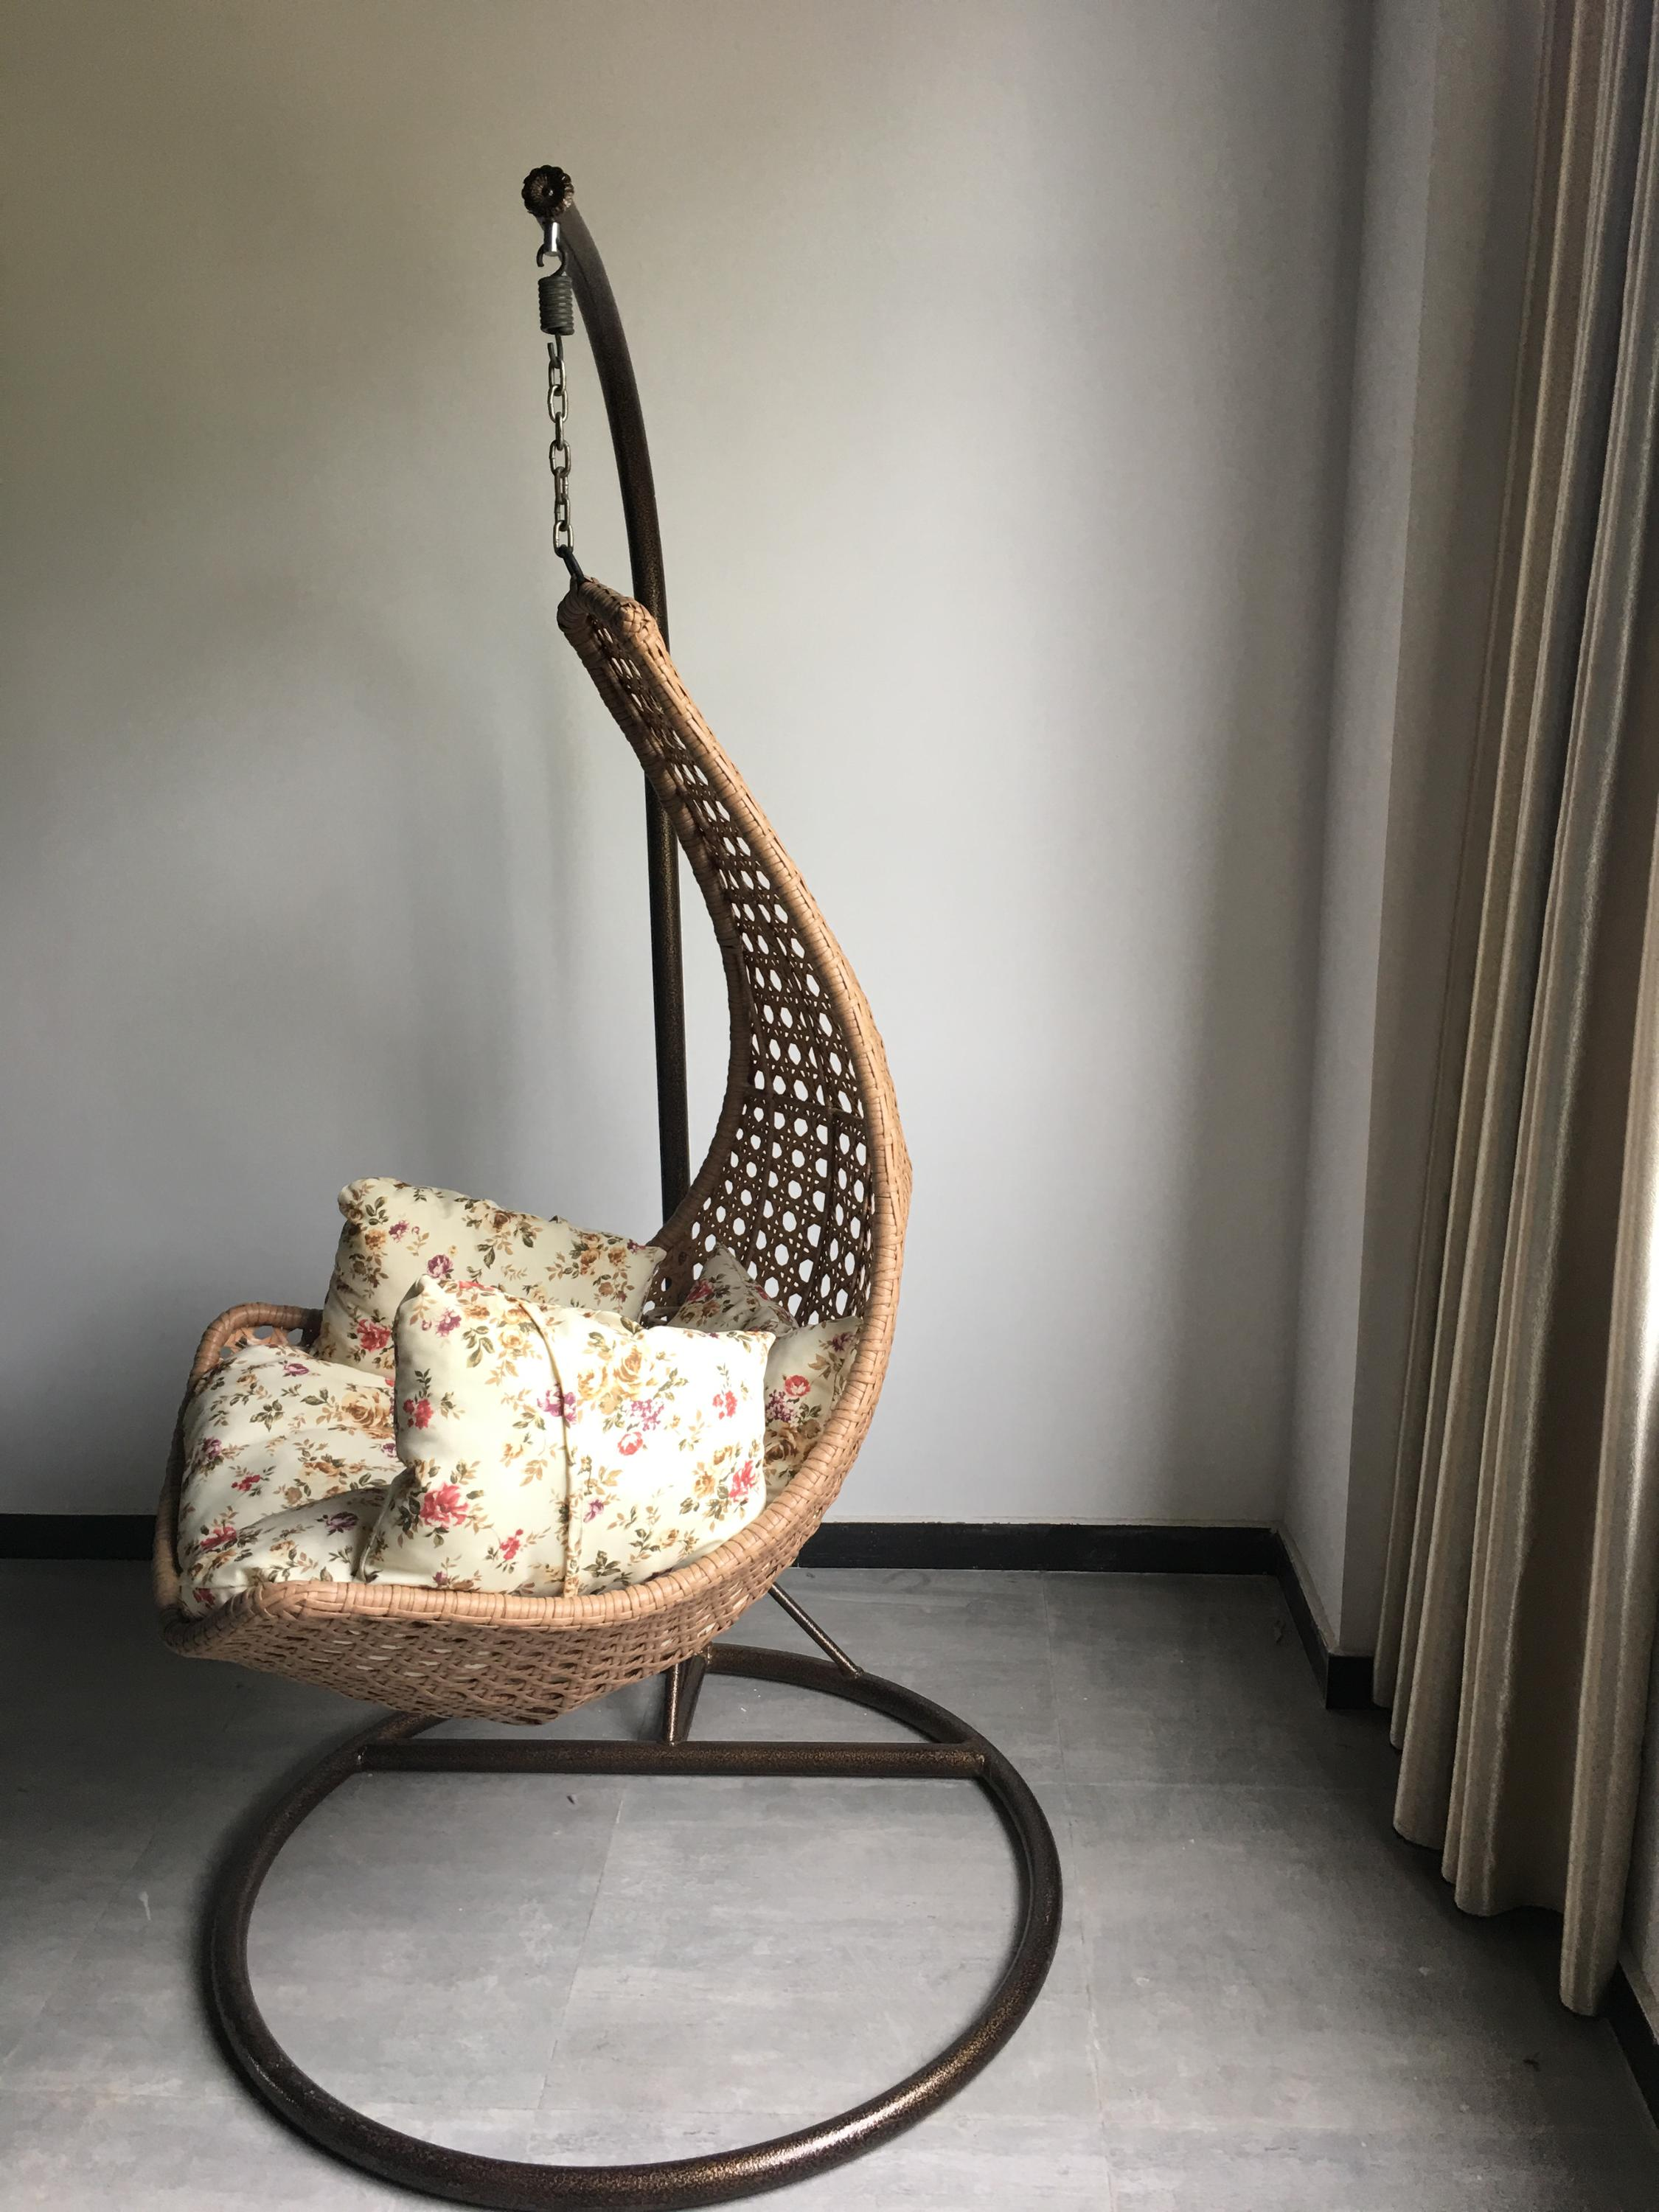 Swing Chair-Single seat hanging egg rattan leisure swing chair